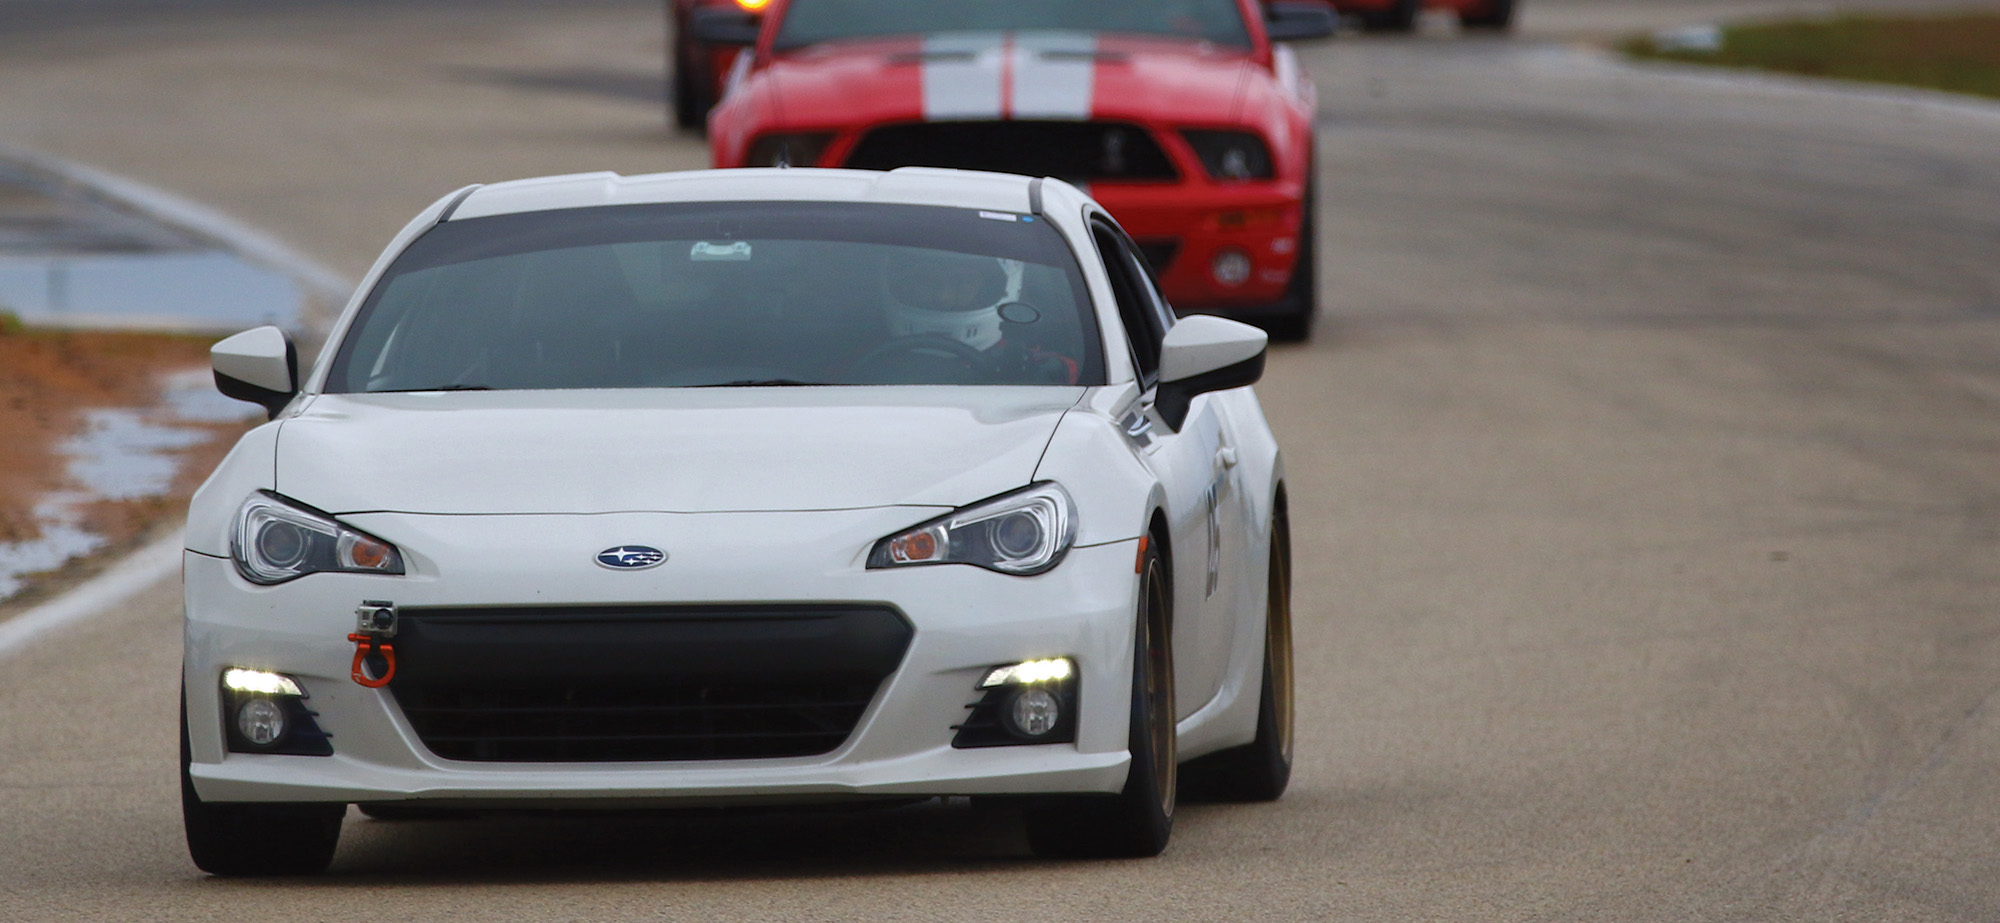 Top 5 Favorite Track Day Cars Articles Grassroots Motorsports